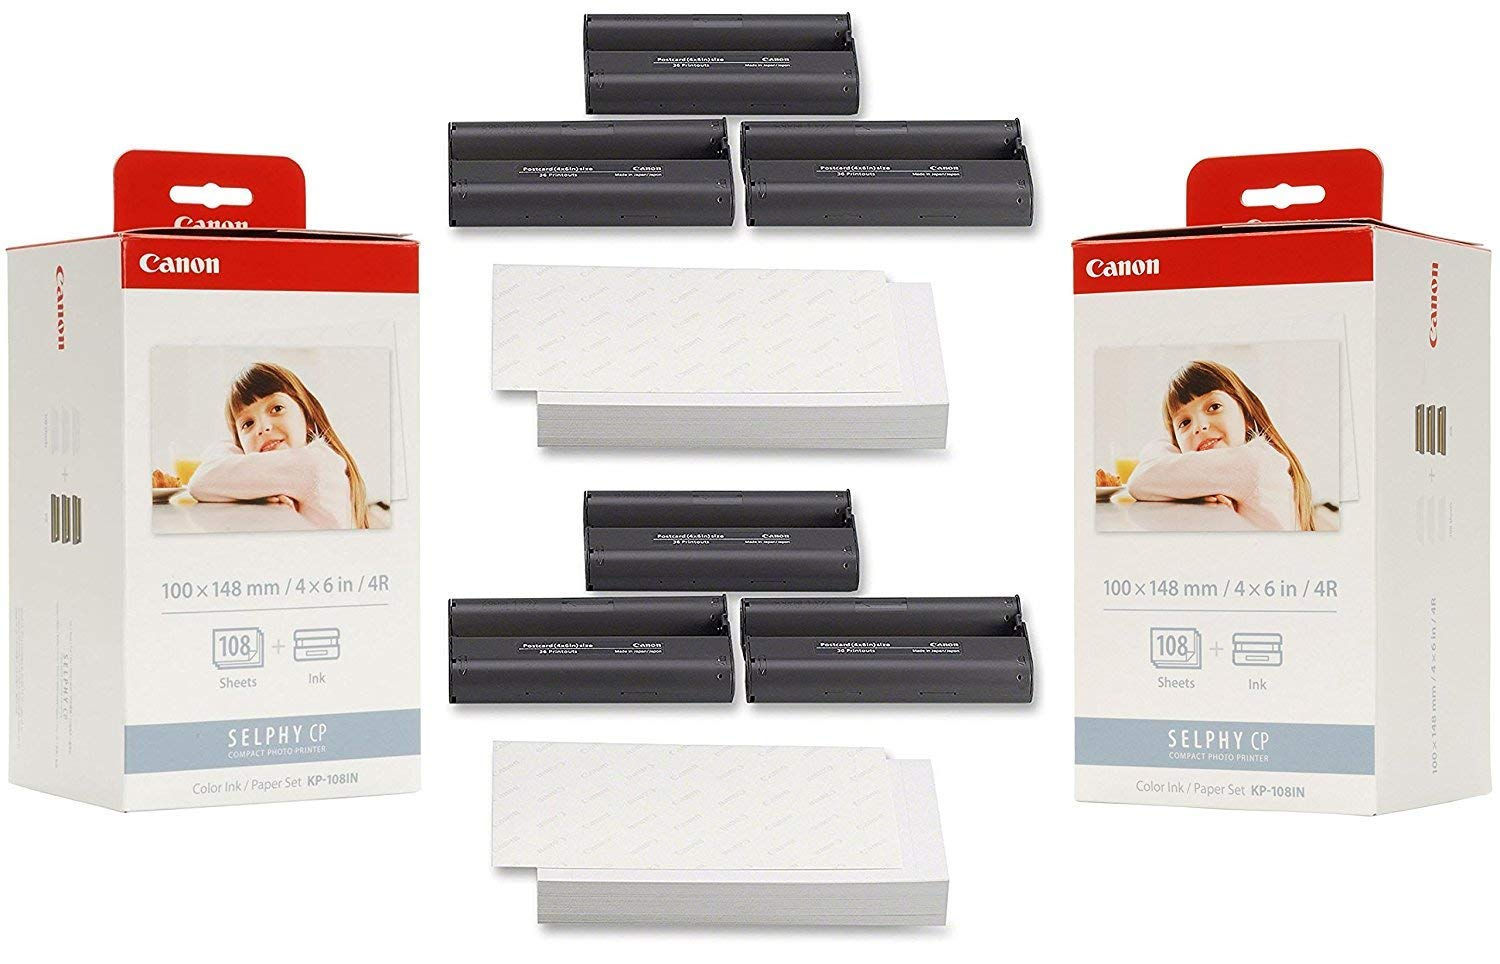 Canon KP-108IN Ink Paper Set (2) Pack - 216 Prints KP-108IN-2